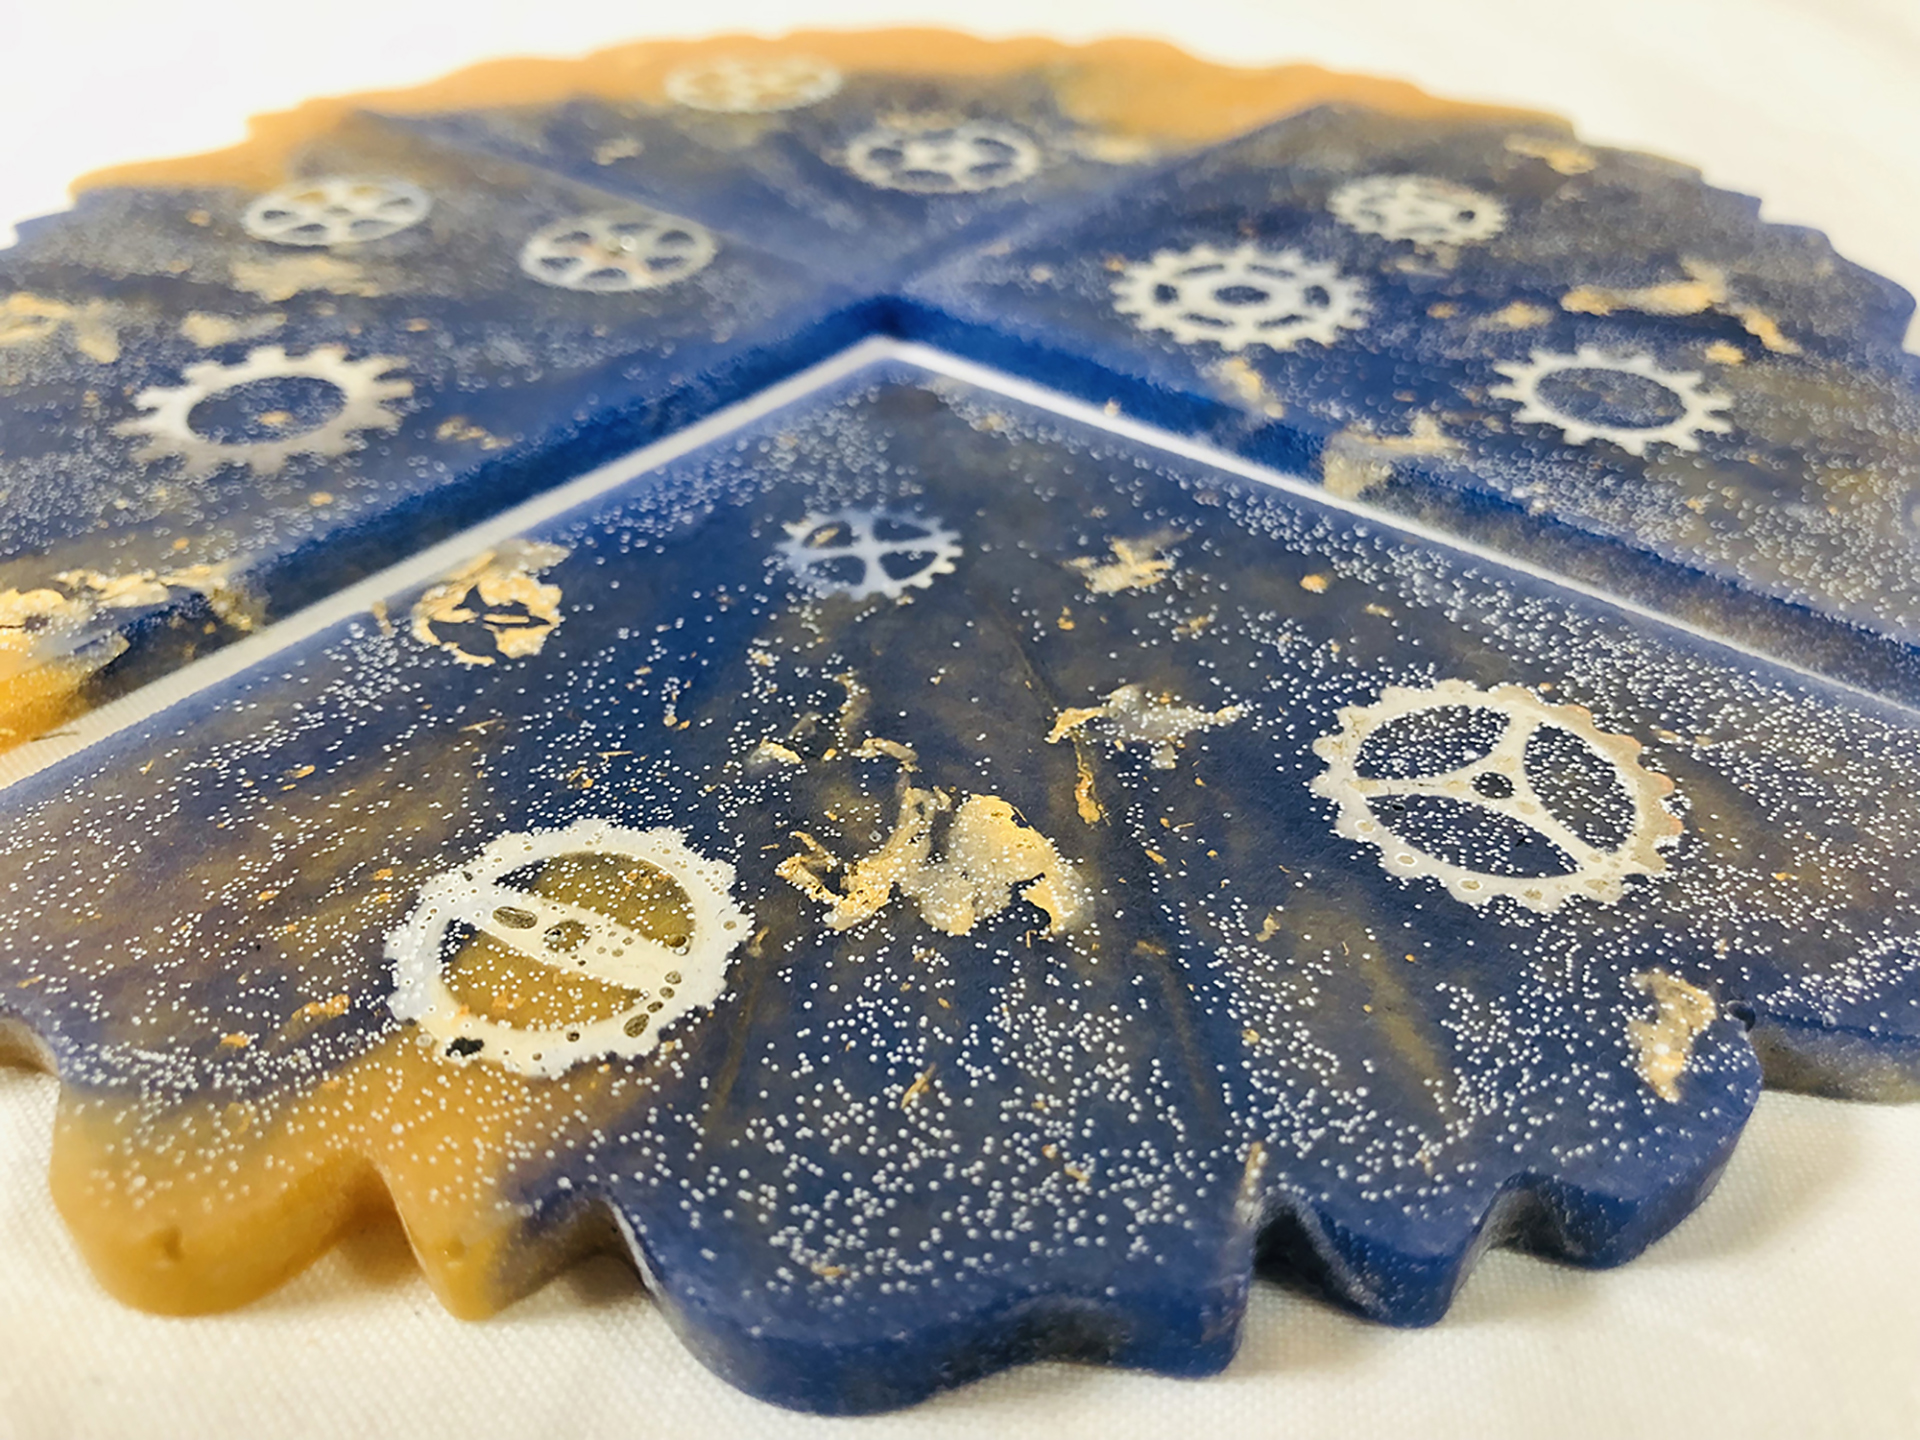 Steampunk Square Footed Acrylic Resin Coasters